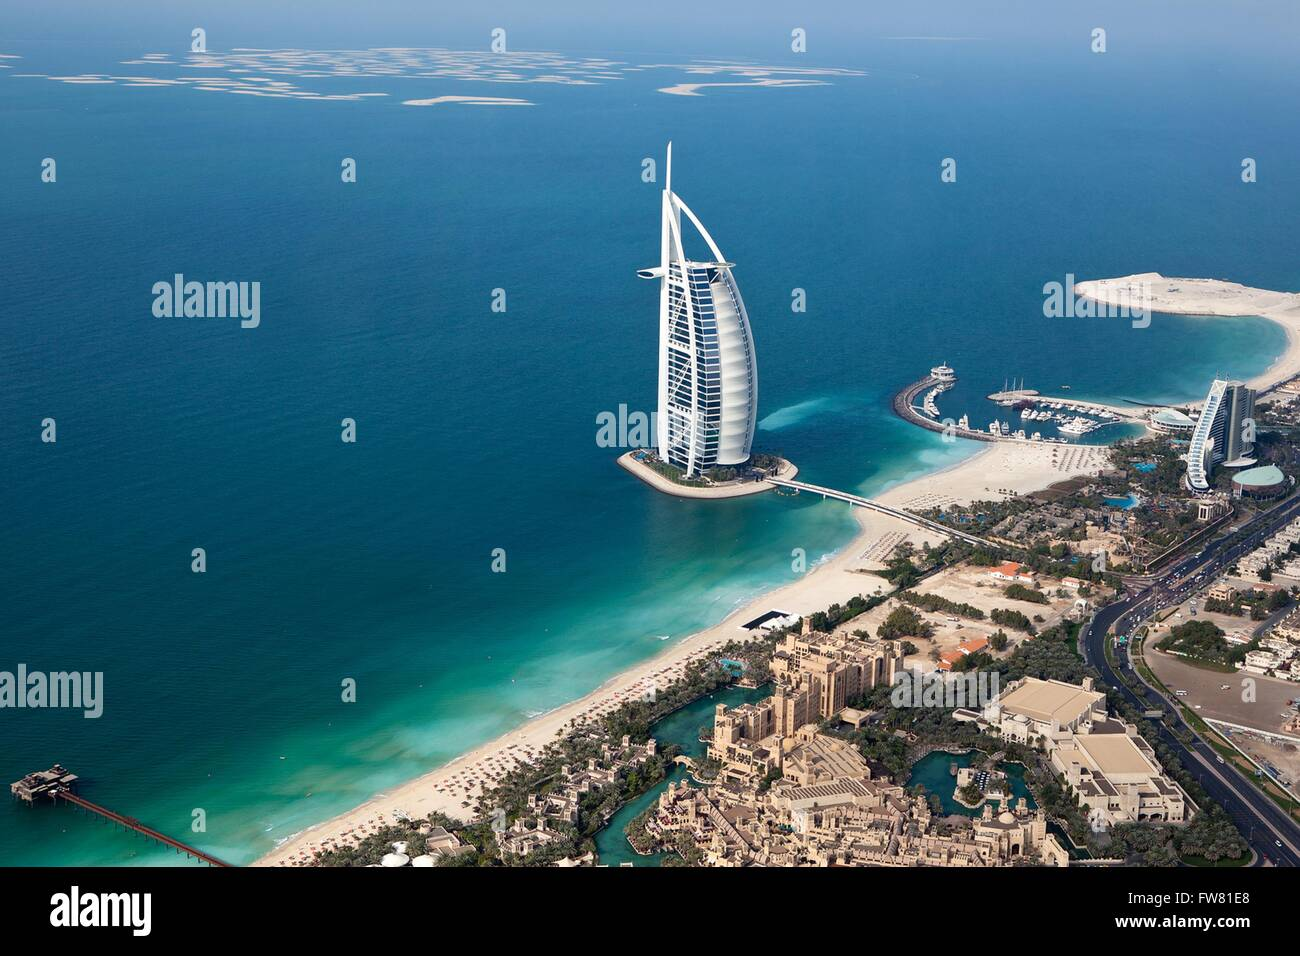 Aerial view of the luxury hotel Burj Al Arab in Dubai, United Arab Emirates. Burj Al Arab stands on an artificial - Stock Image